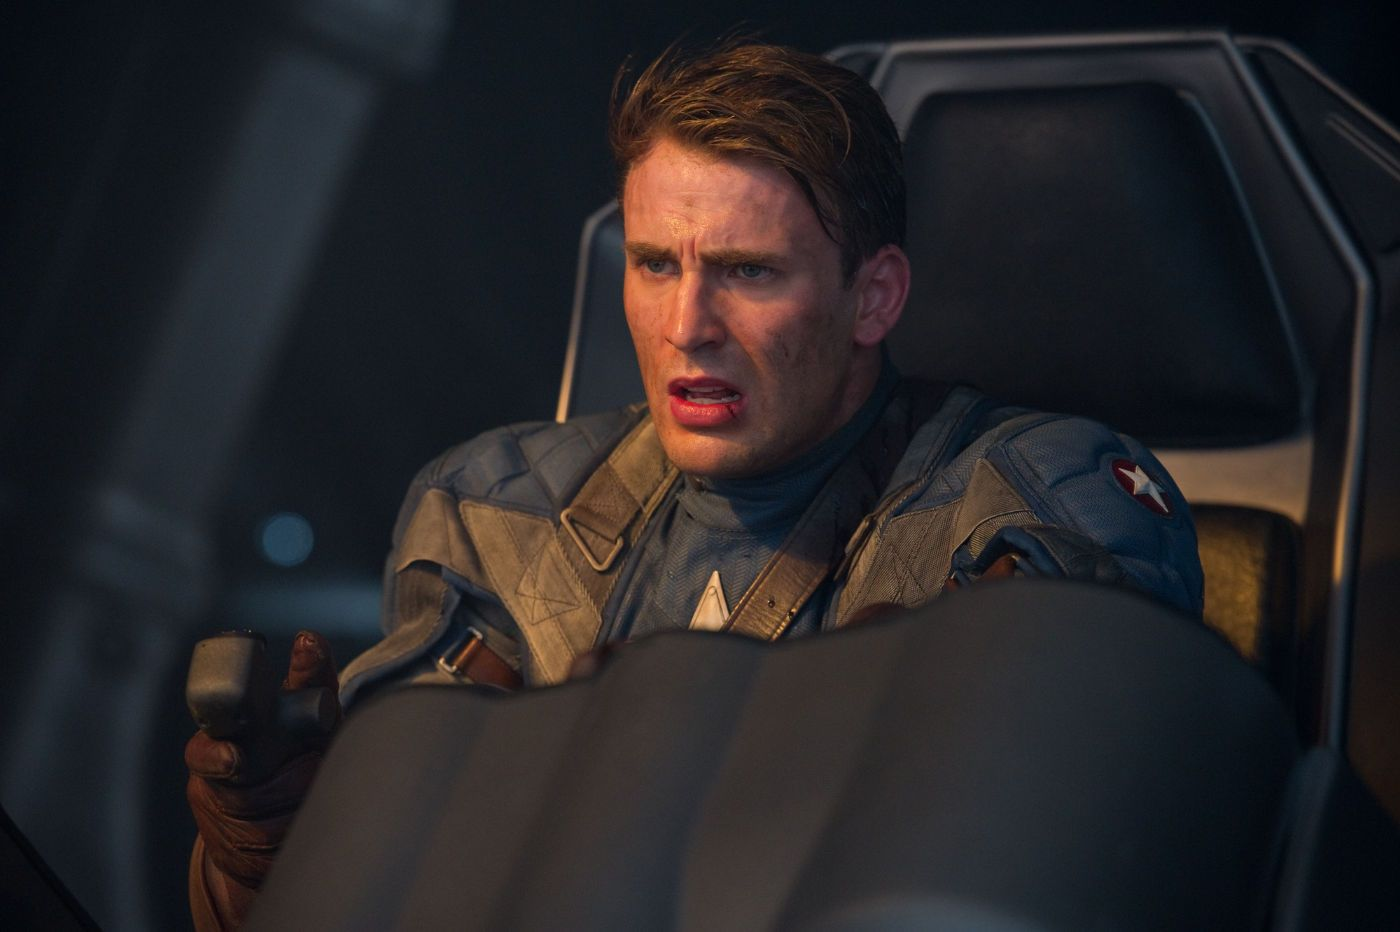 Marvel's Chris Evans always thinks about quitting acting